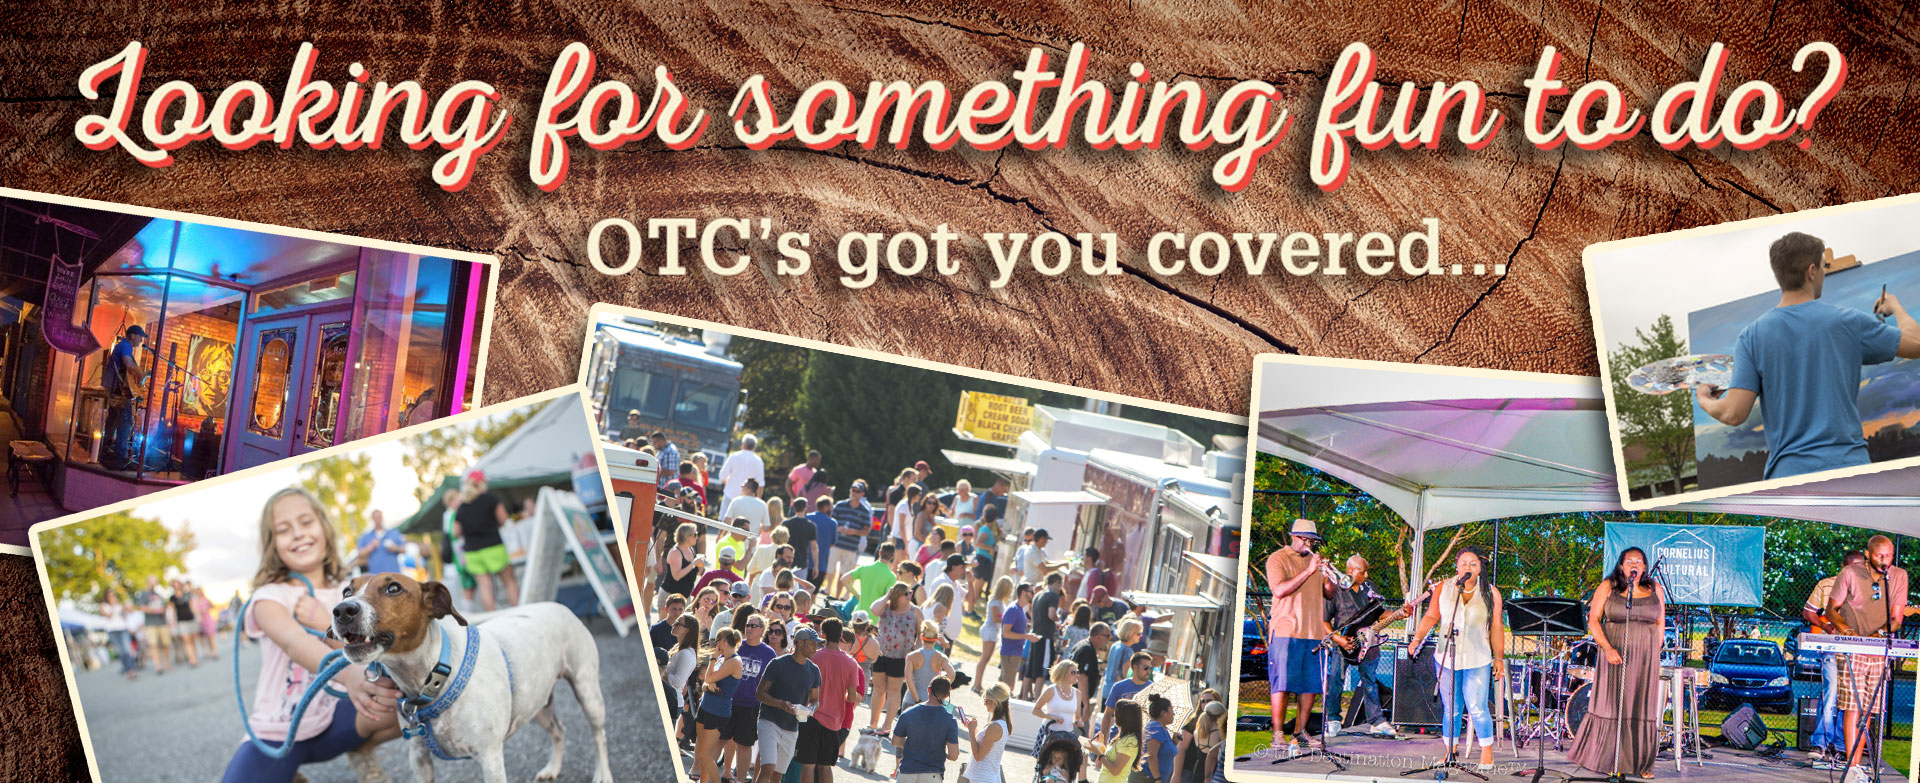 OTC_FB_LookingFun-header